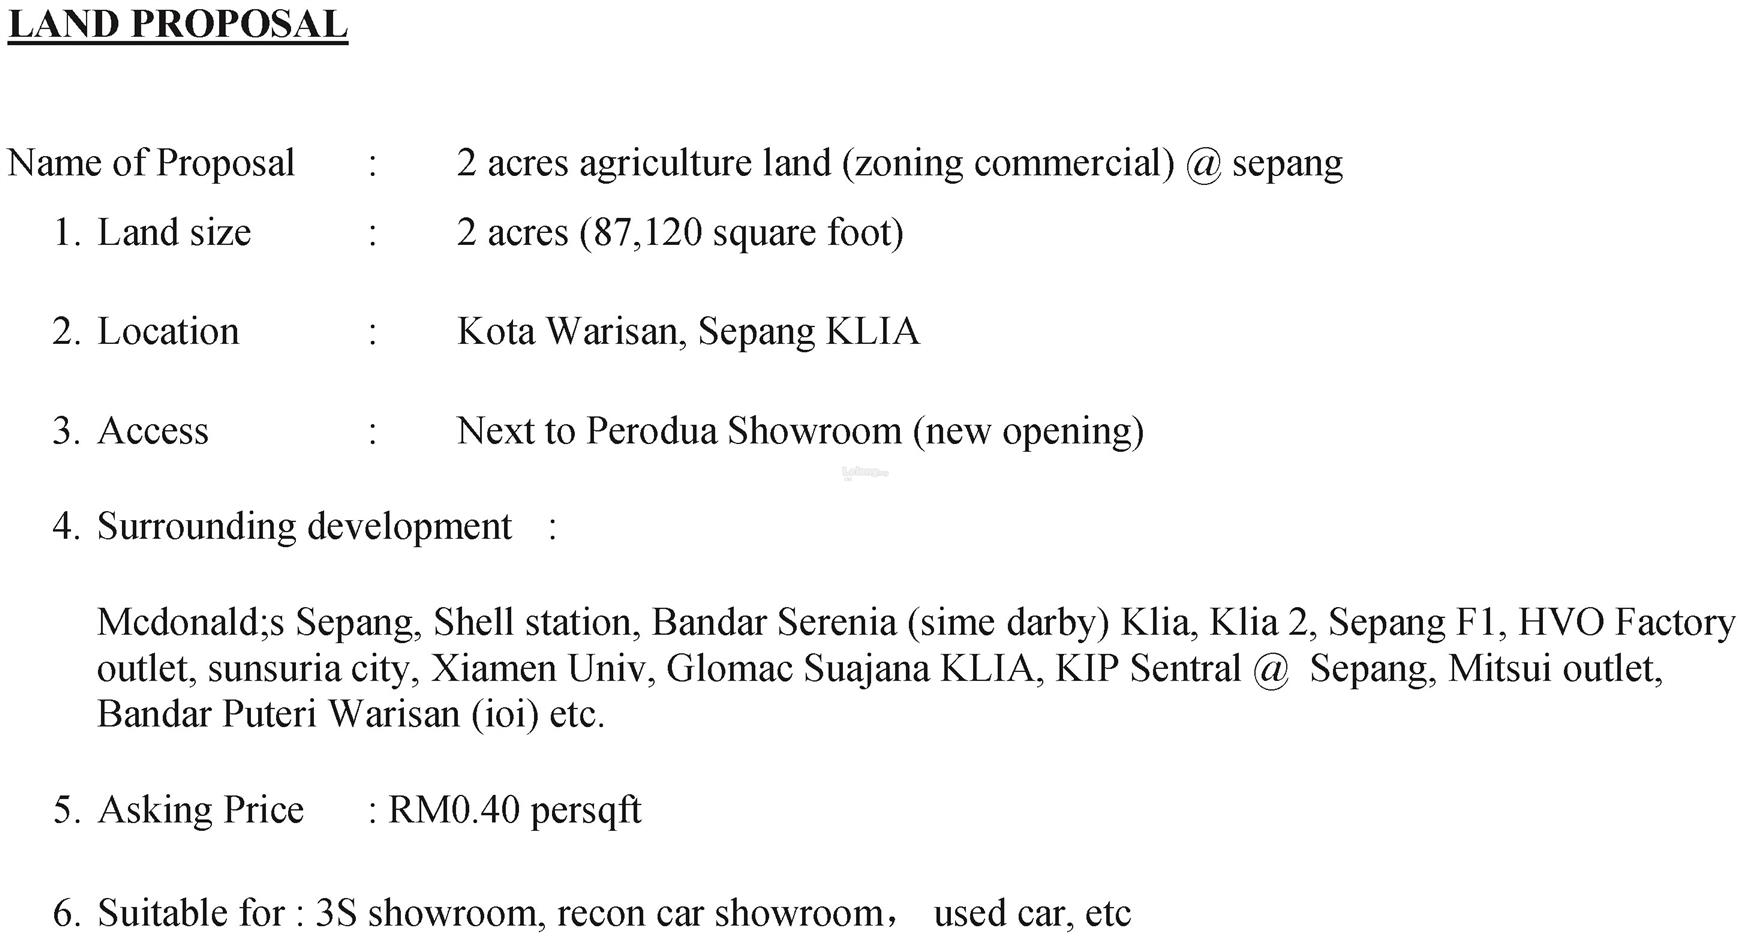 Kota Warisan, Sepang KLIA - 2 acres zoning commercial Main road Land